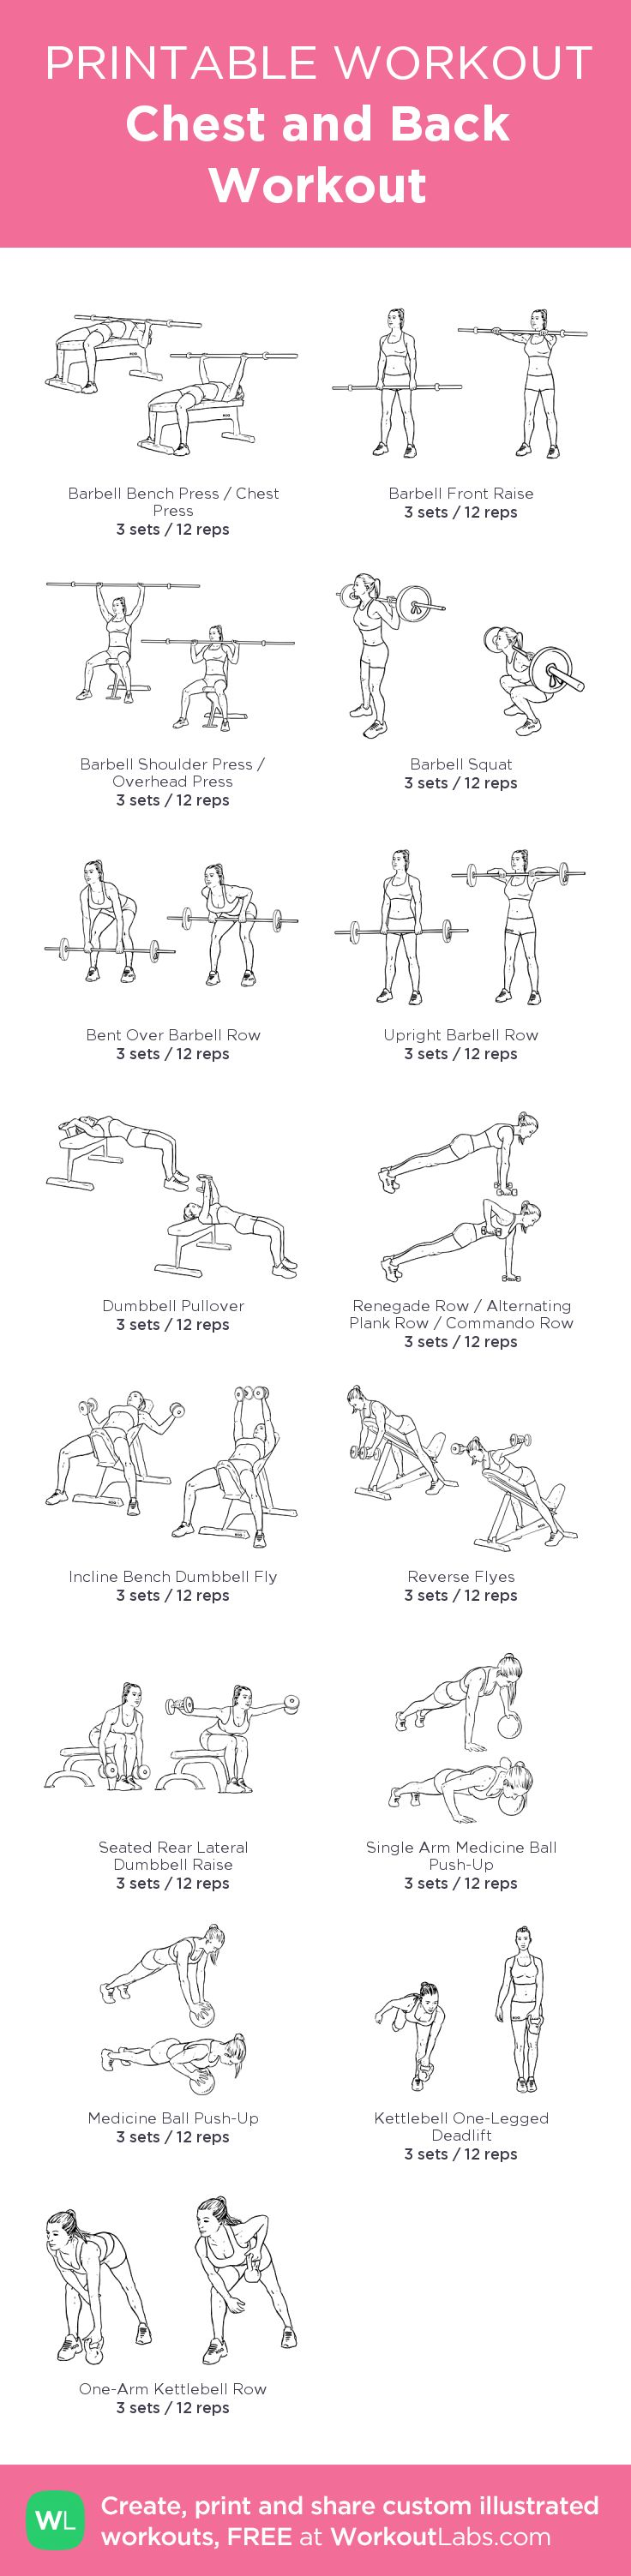 Chest and Back Workout: my visual workout created at WorkoutLabs.com • Click through to customize and download as a FREE PDF! #customworkout